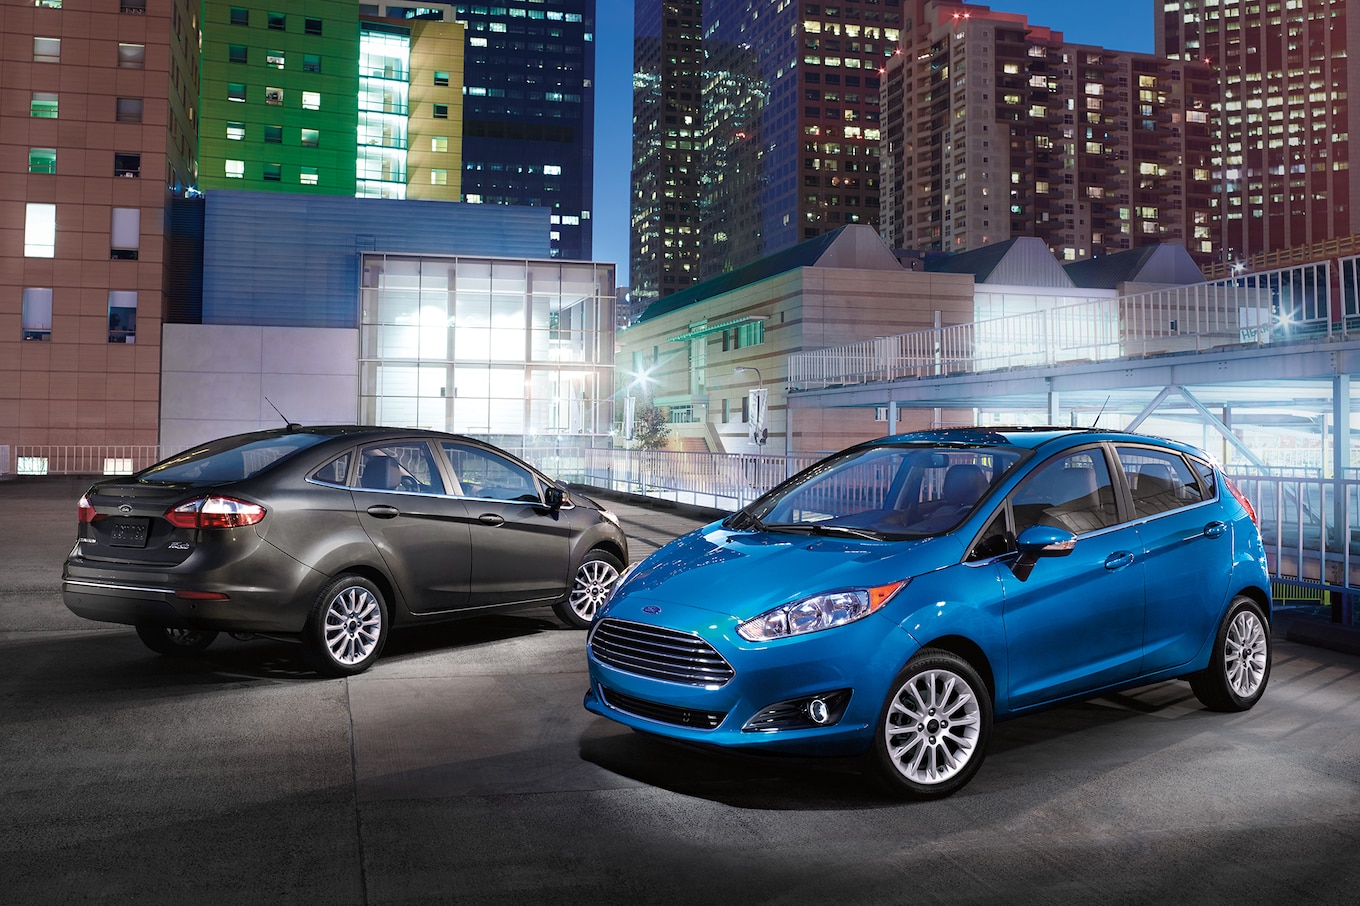 hight resolution of 2017 ford fiesta reviews and rating motor trend 2015 ford fiesta fuse box diagram 2015 ford fiesta fuse box diagram pic